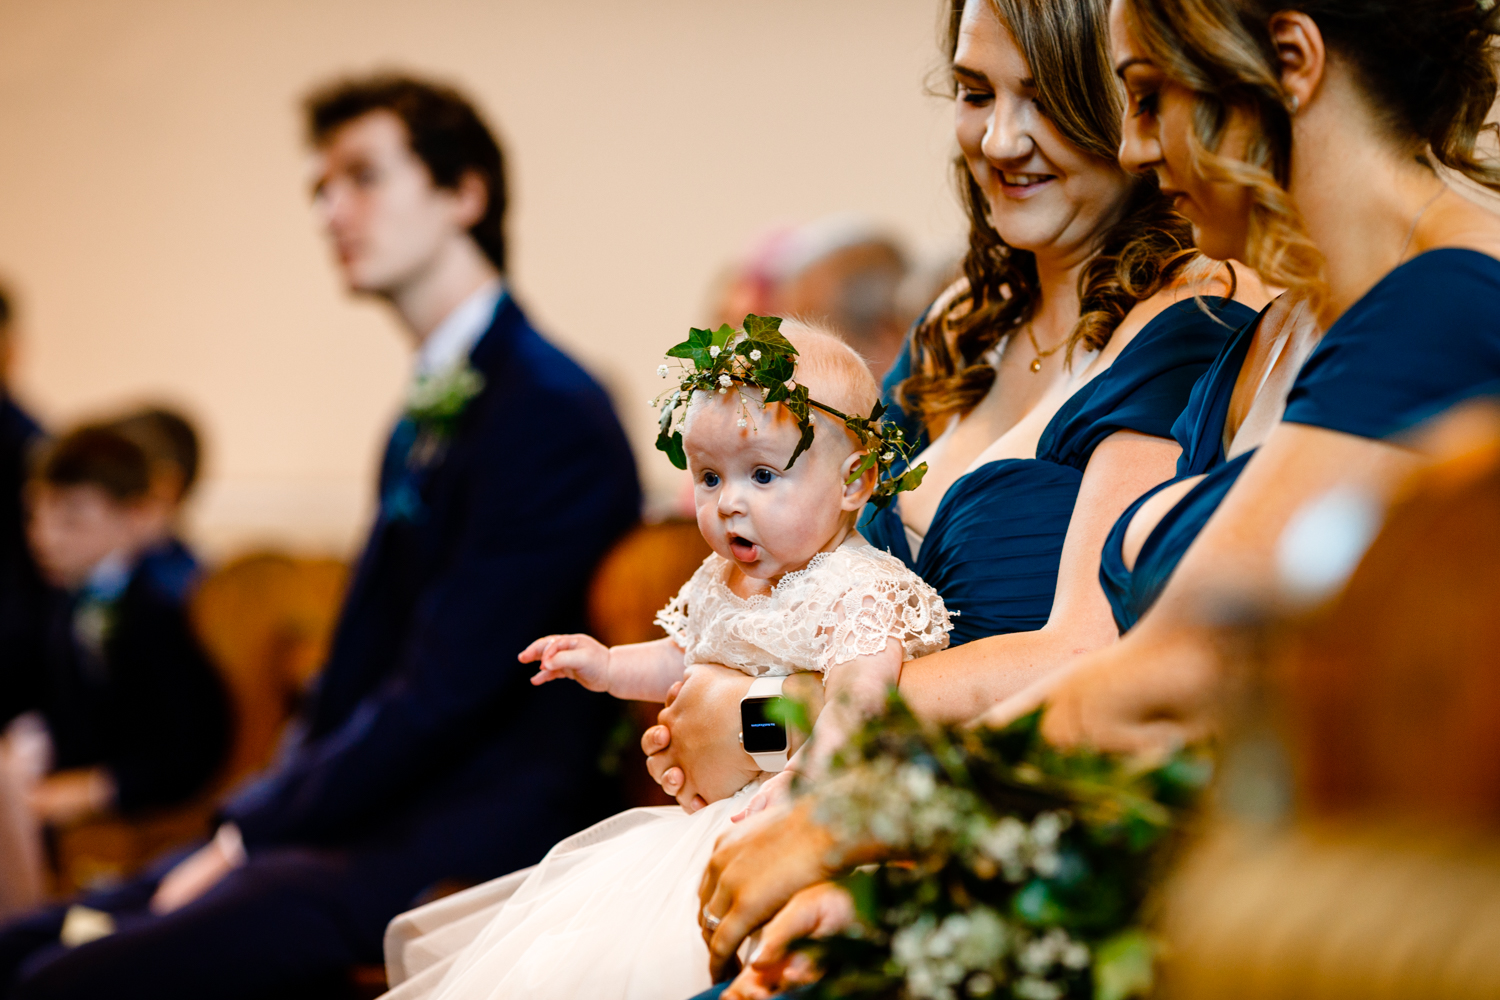 Lancashire-wedding-photographer-adele-and-alex-059.jpg